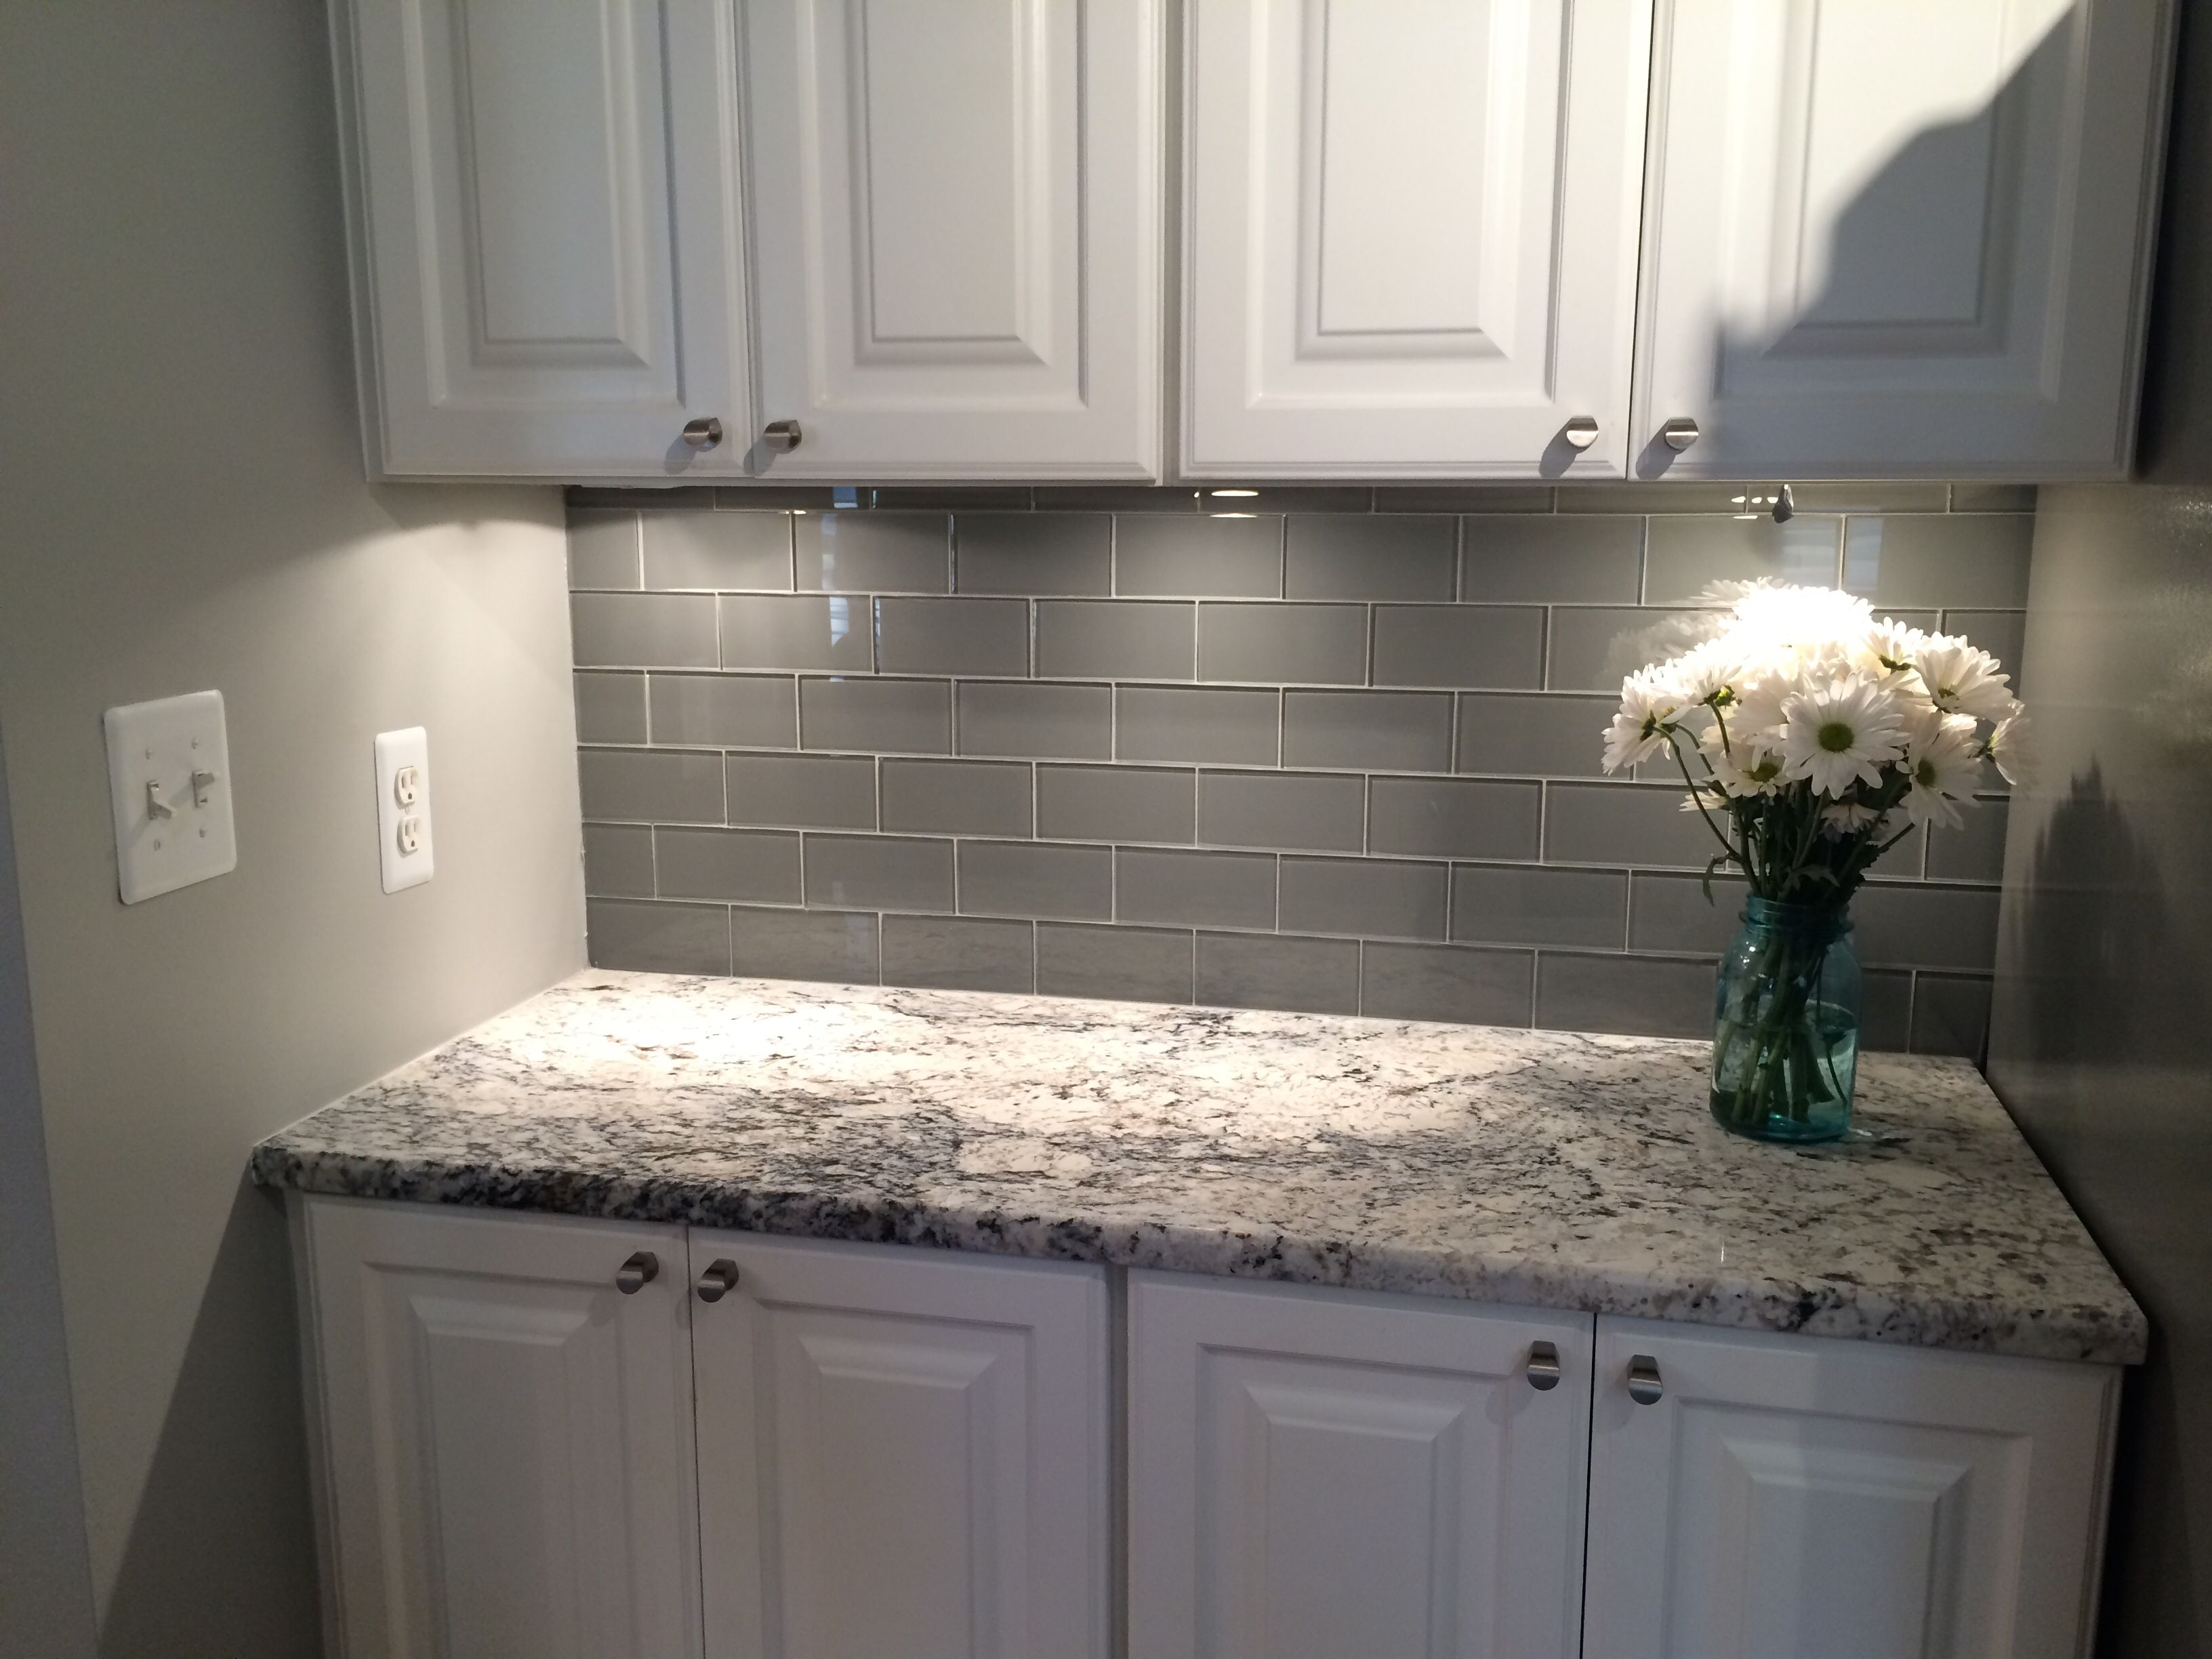 Grey Glass Subway Tile Backsplash And White Cabinet For Small Space Part 95